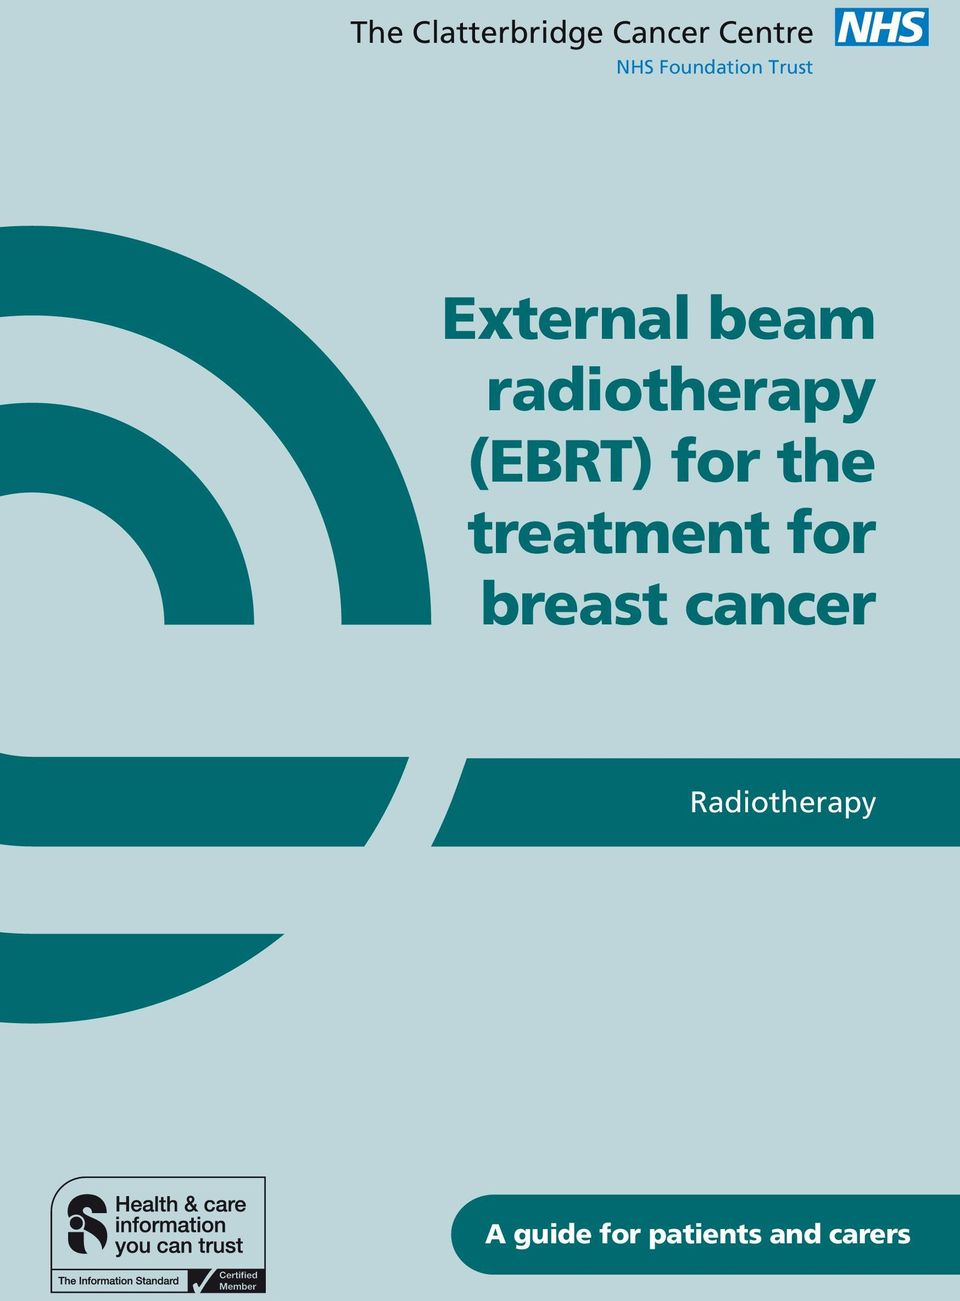 radiotherapy (EBRT) for the treatment for